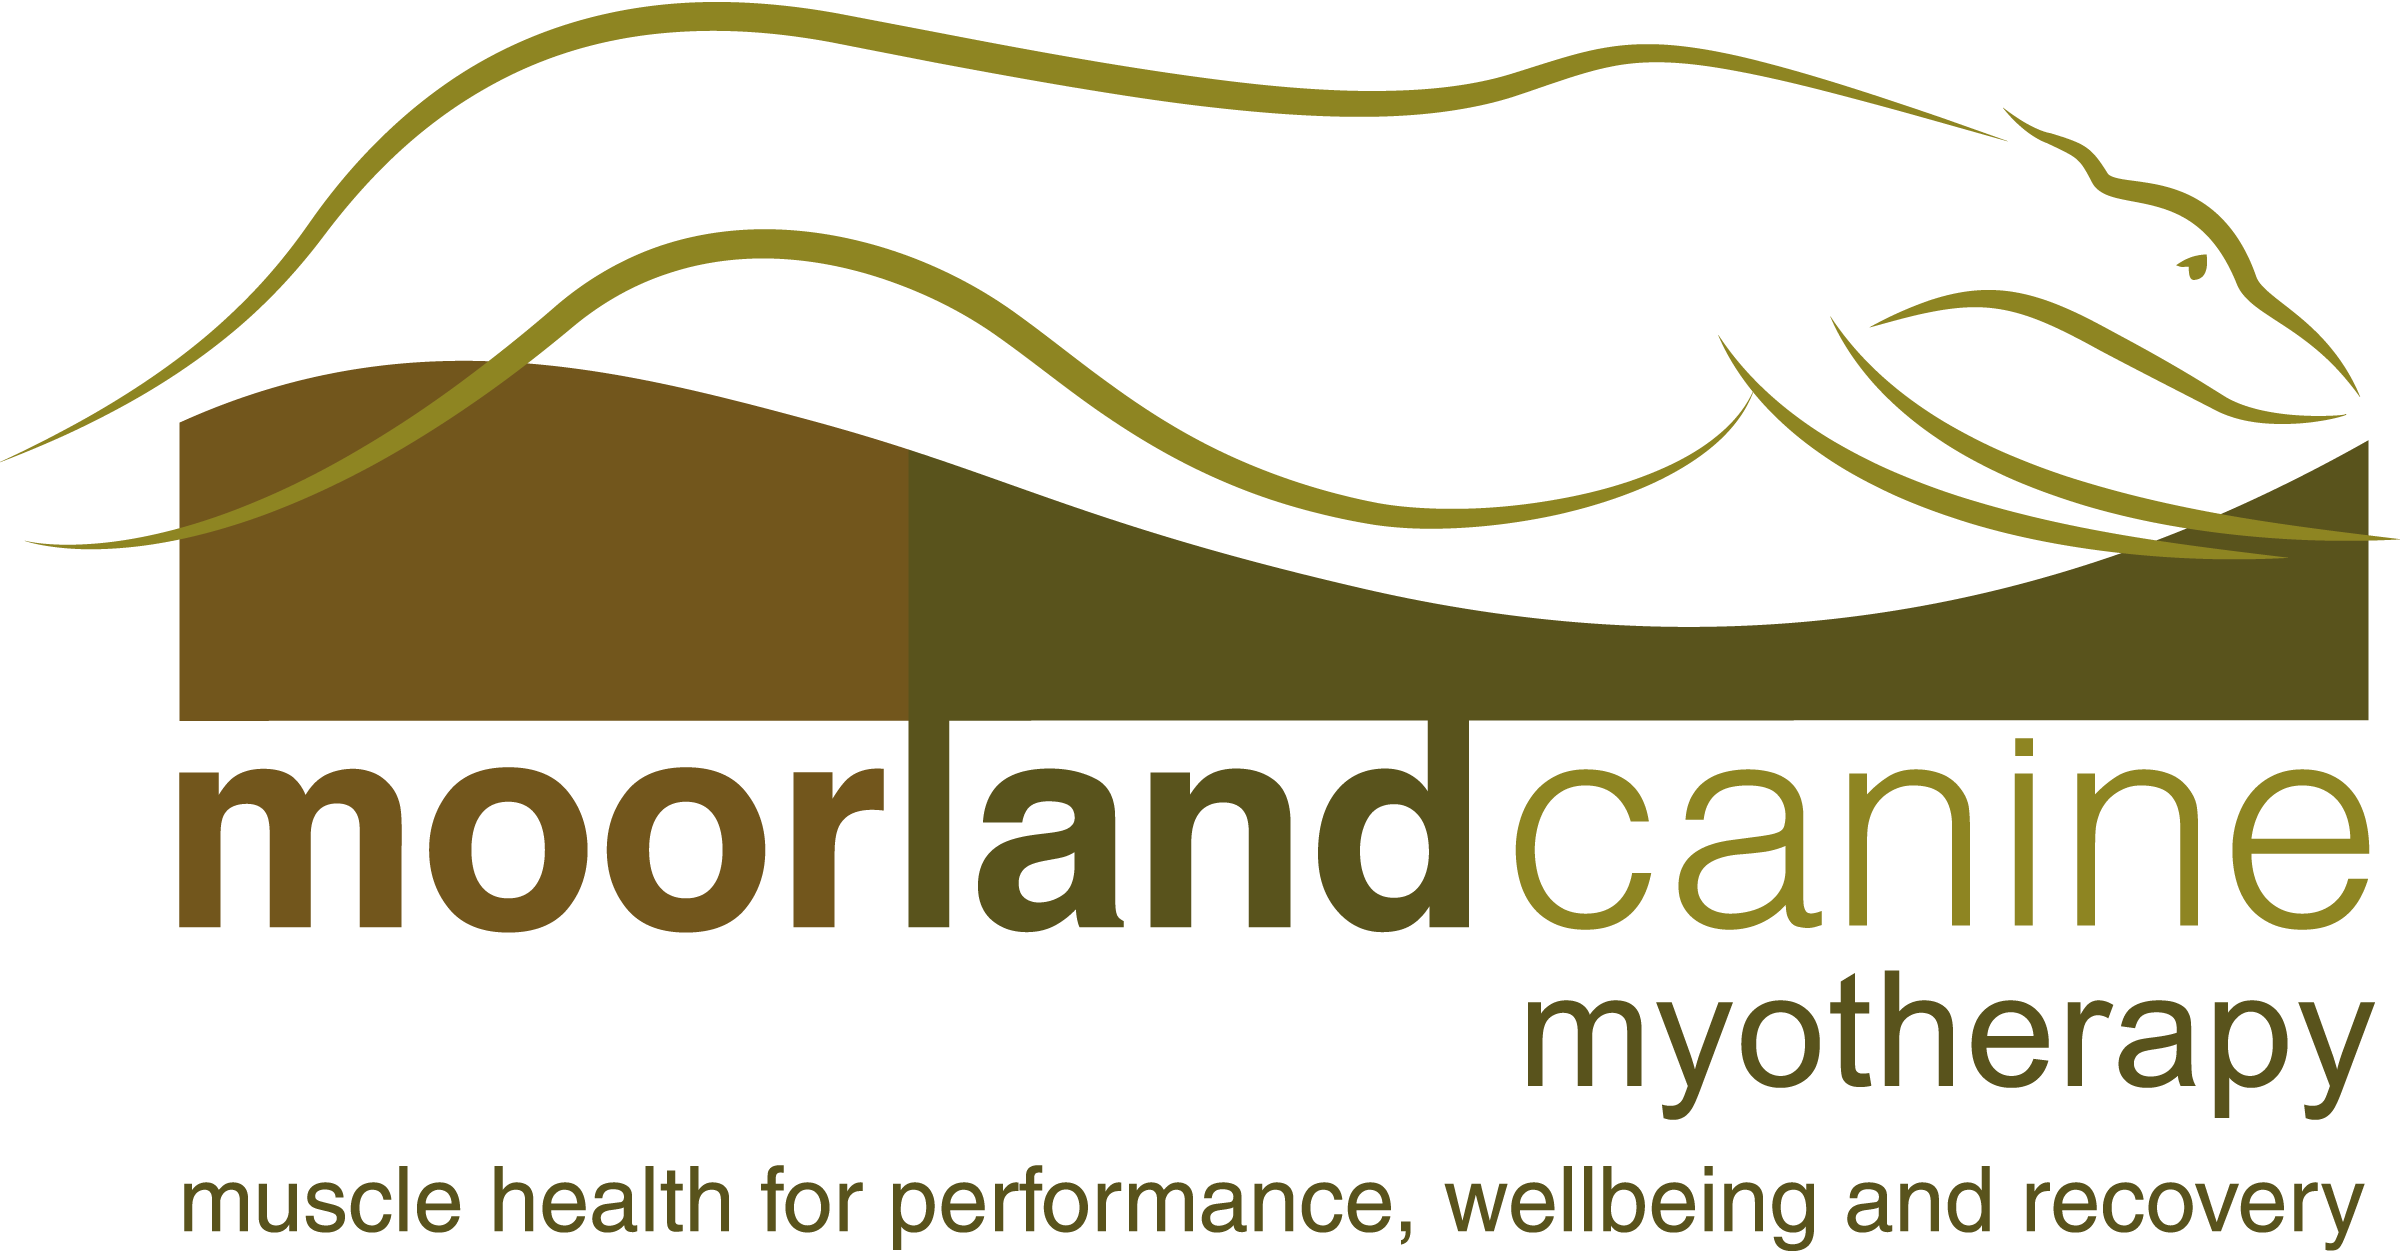 moorland canine logo.png